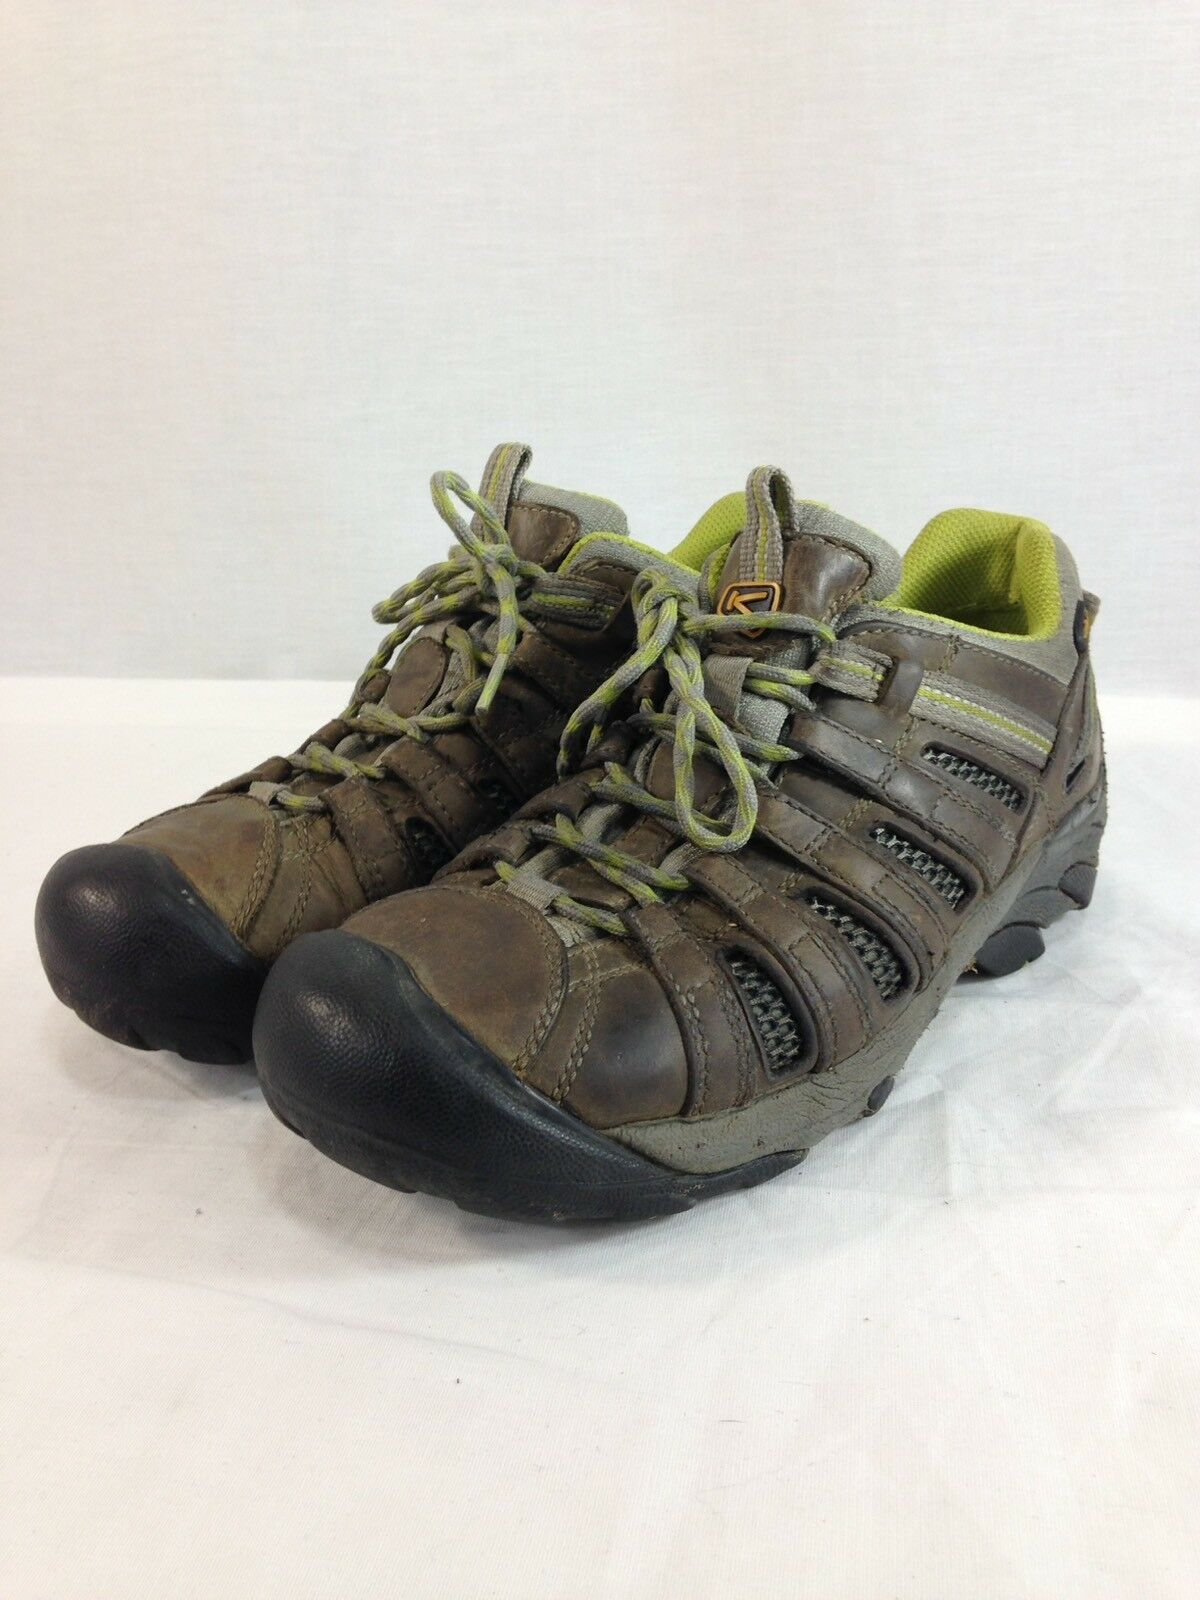 Keen Hiking Stiefel Trail Turnschuhe schuhe daSie 9 braun Leather Tow Top Lace Up